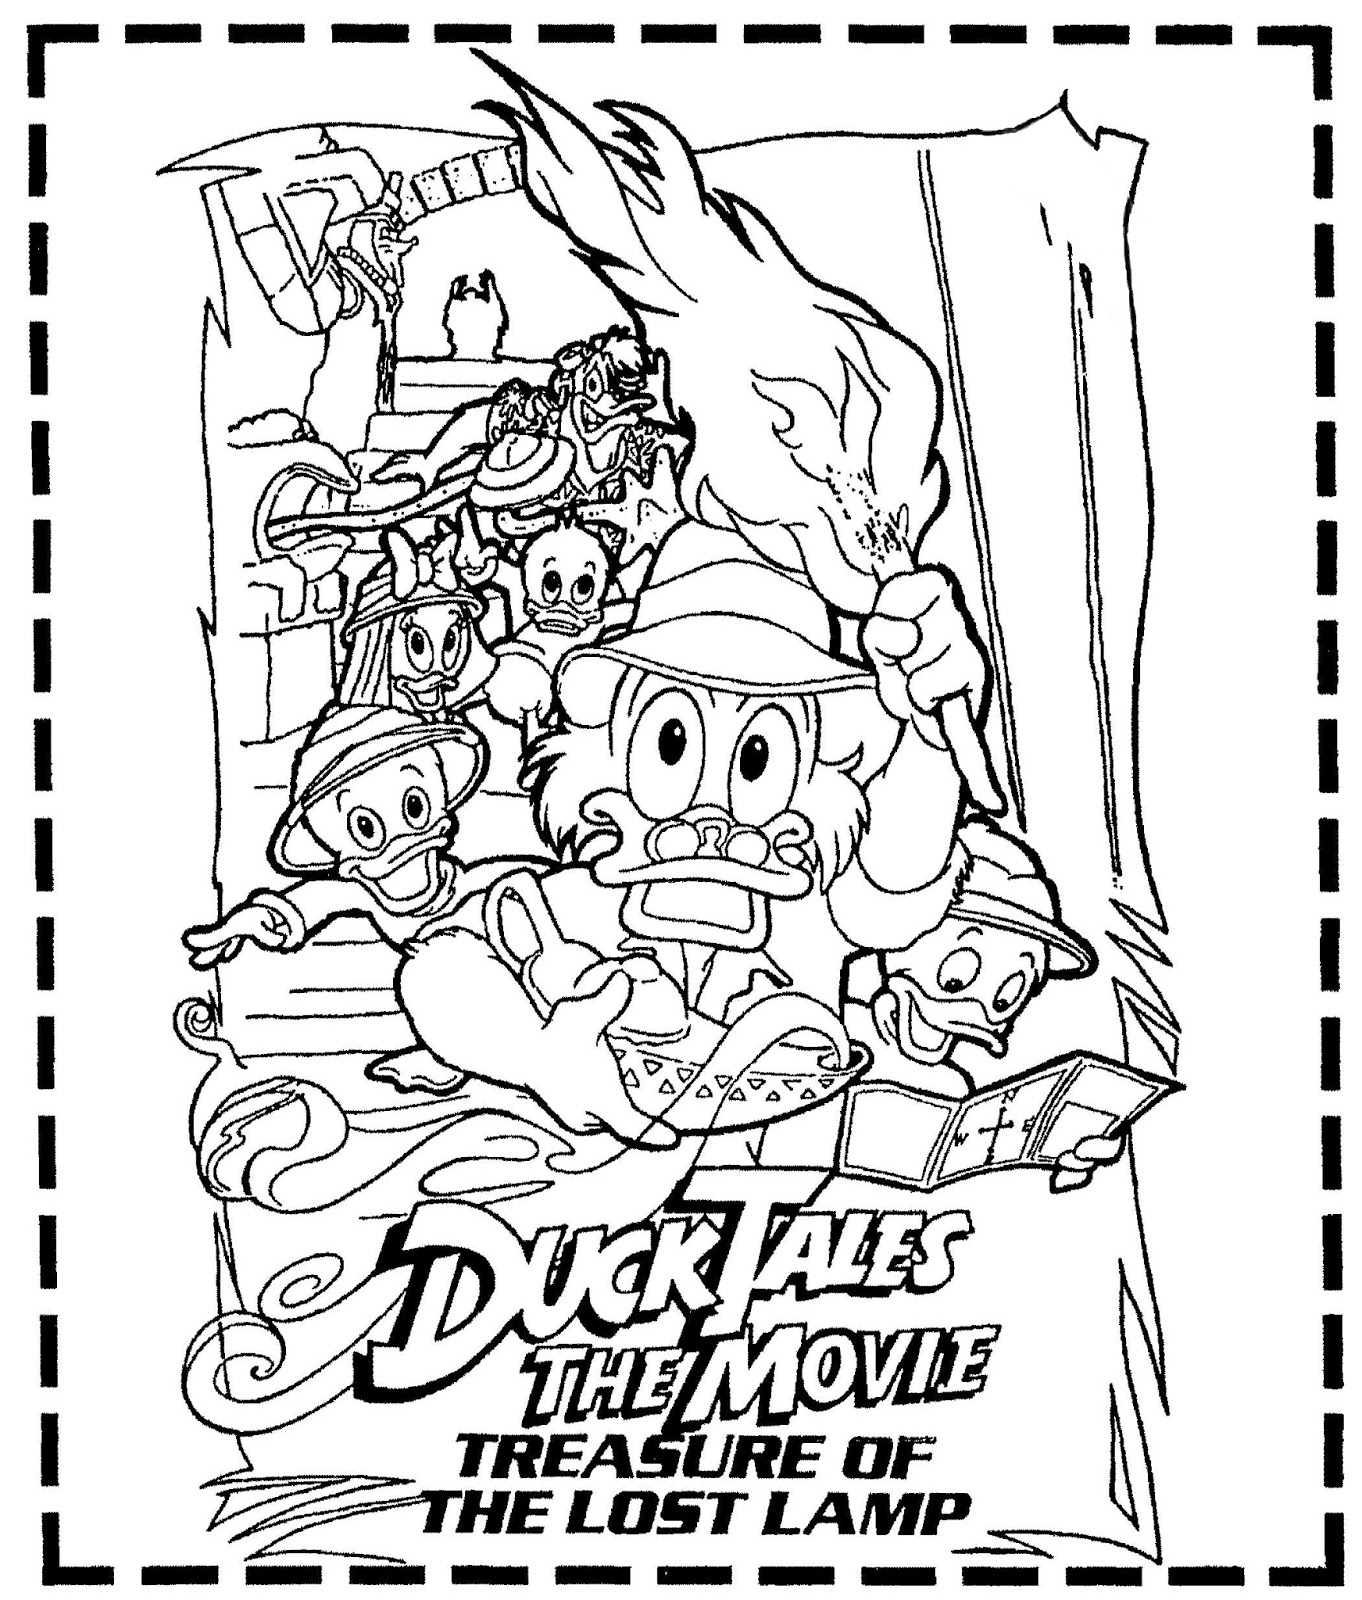 Mostly Paper Dolls Too!: DUCK TALES THE MOVIE, Treasure Of